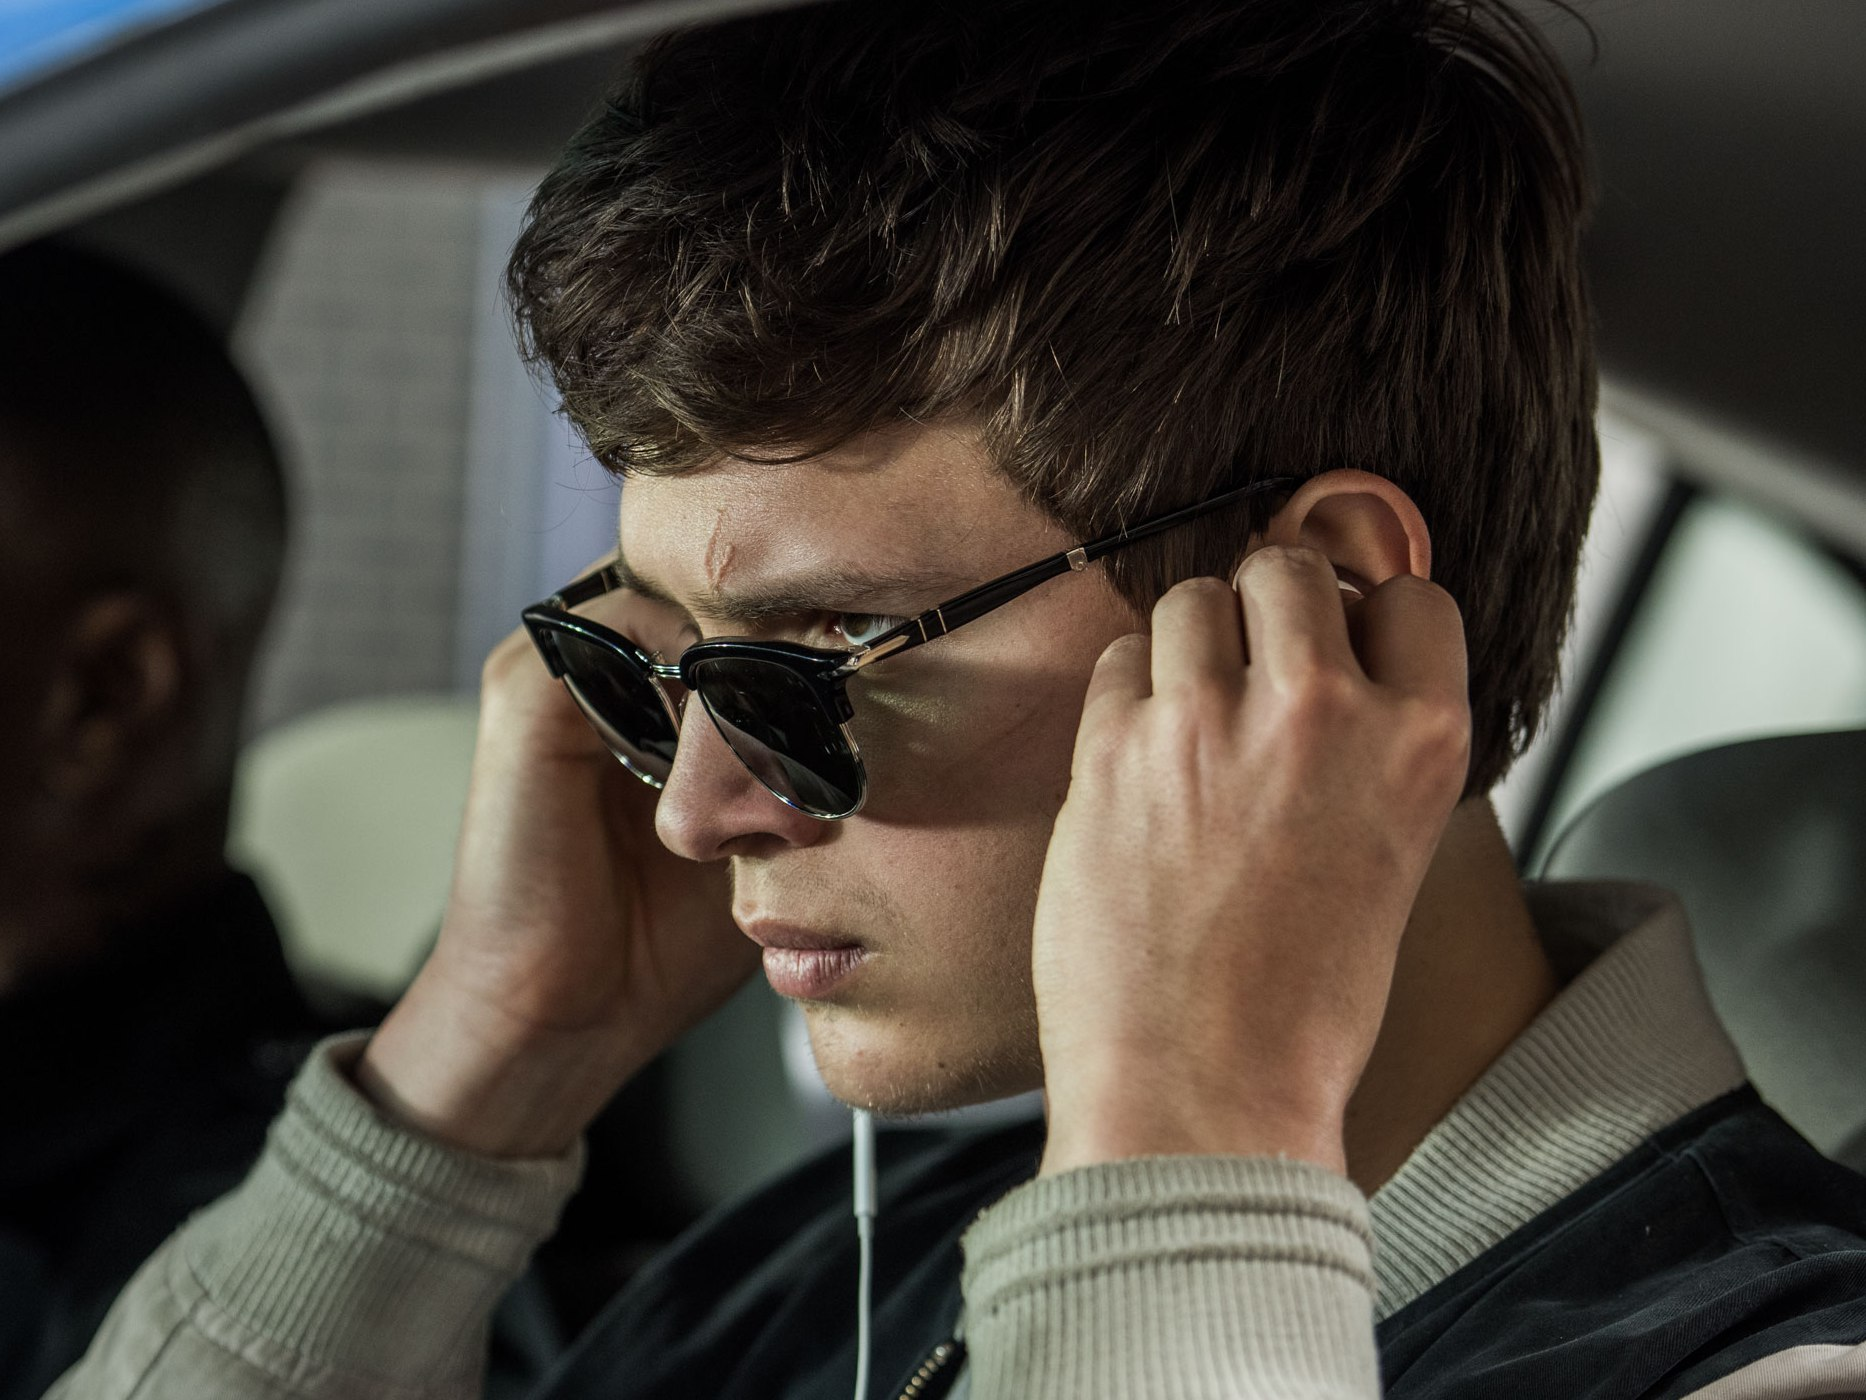 Baby Driver, Edgar Wright, Ansel Elgort, Lily James, Jamie Foxx, Jon Hamm, Kevin Spacey, Jon Bernthal, Cornetto Trilogy, Shaun of the Dead, Hot Fuzz, Scott Pilgrim, The World's End, Heist films, Racing films, Musical films, 2017 films